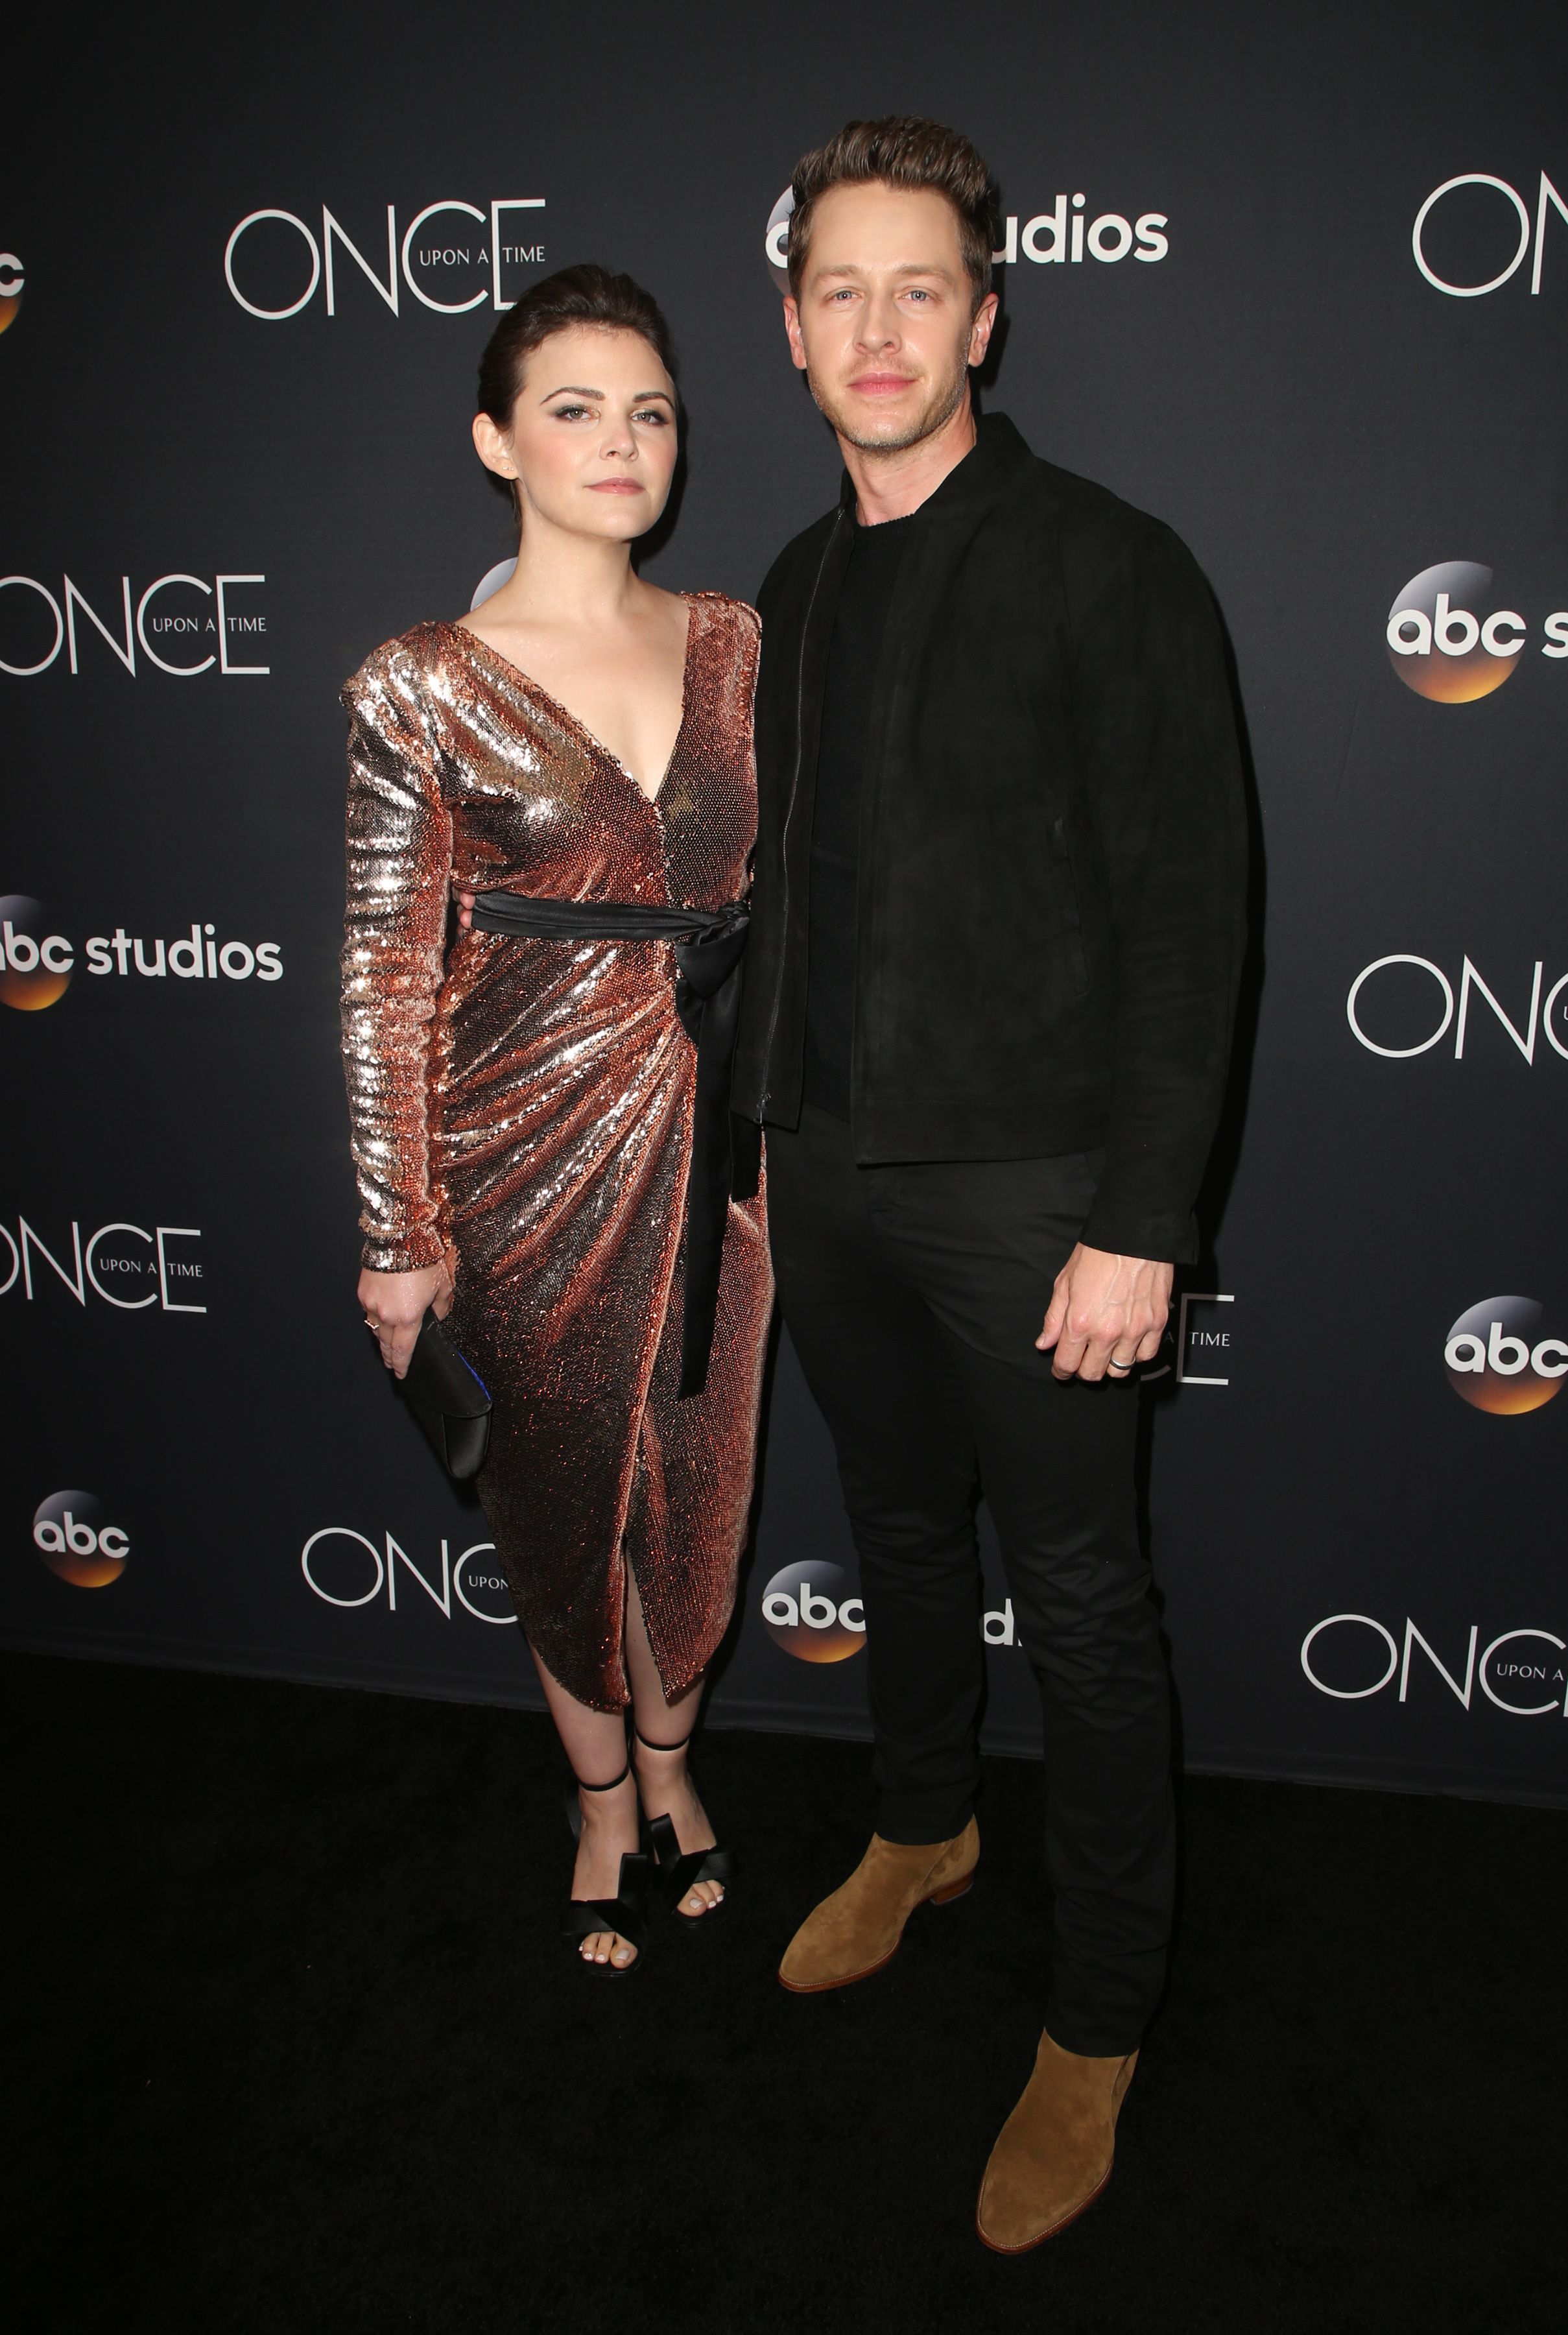 """Ginnifer Goodwin and Josh Dallas attend the """"Once Upon a Time"""" TV show finale in Los Angeles on May 8, 2018."""